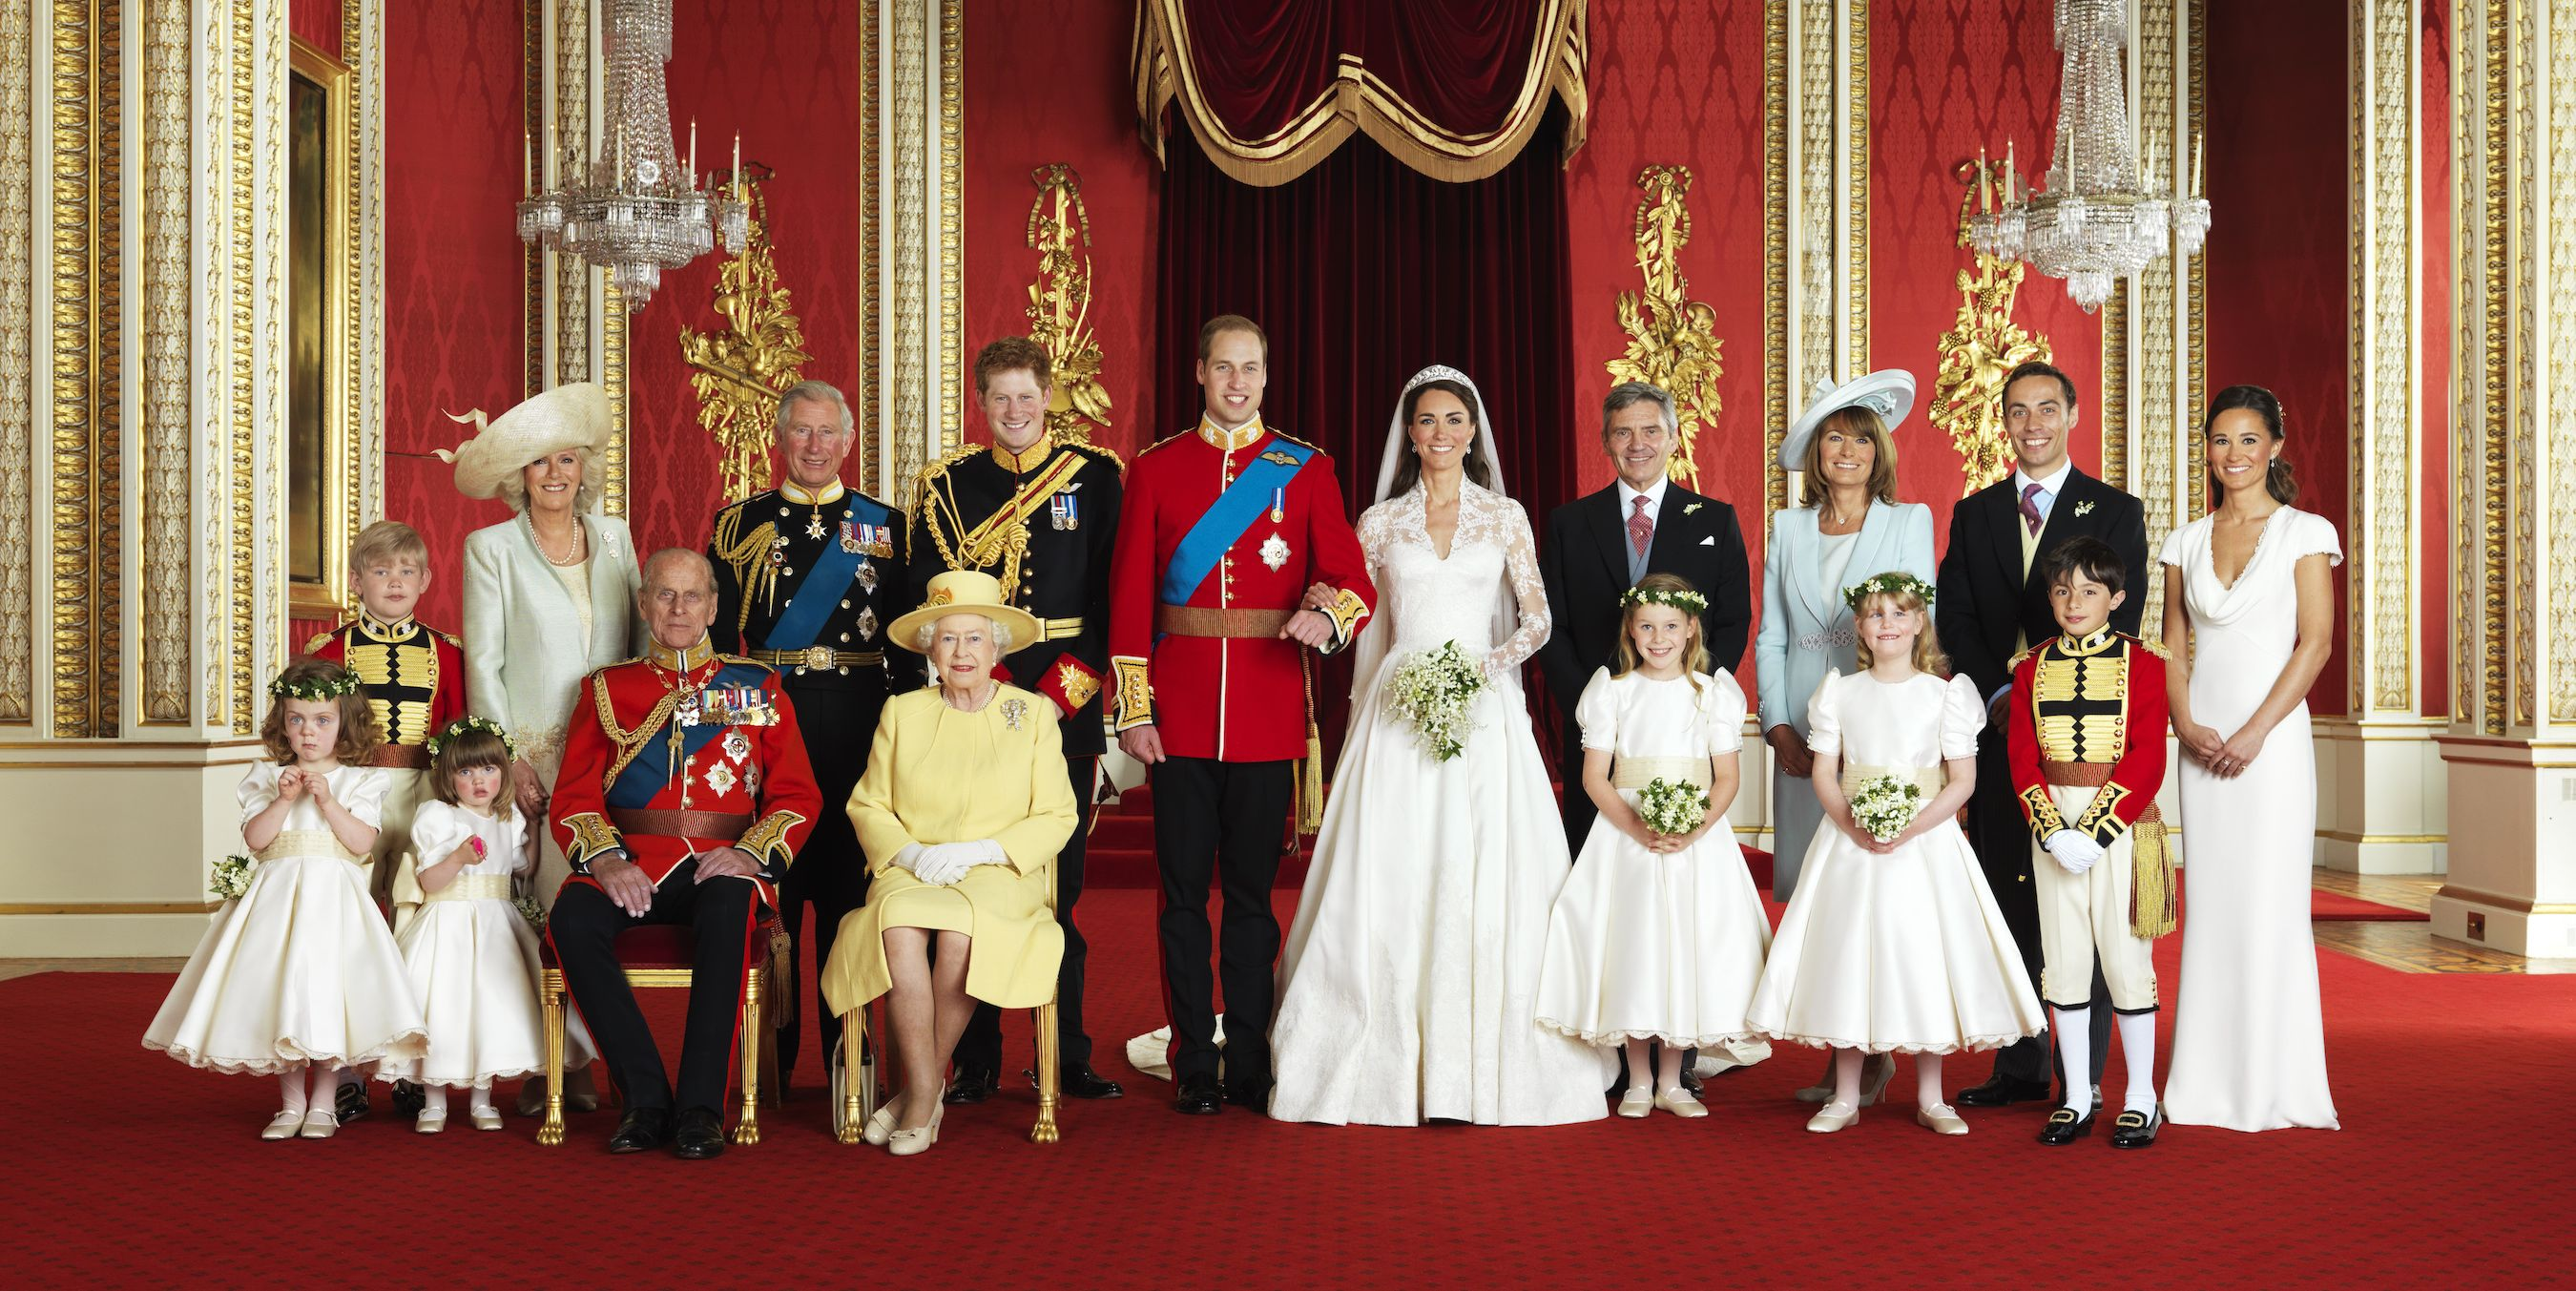 gettyimages 113285846 1524668494.jpg?crop=1.00xw:0.728xh;0,0 - Royal Wedding 2011 Guests